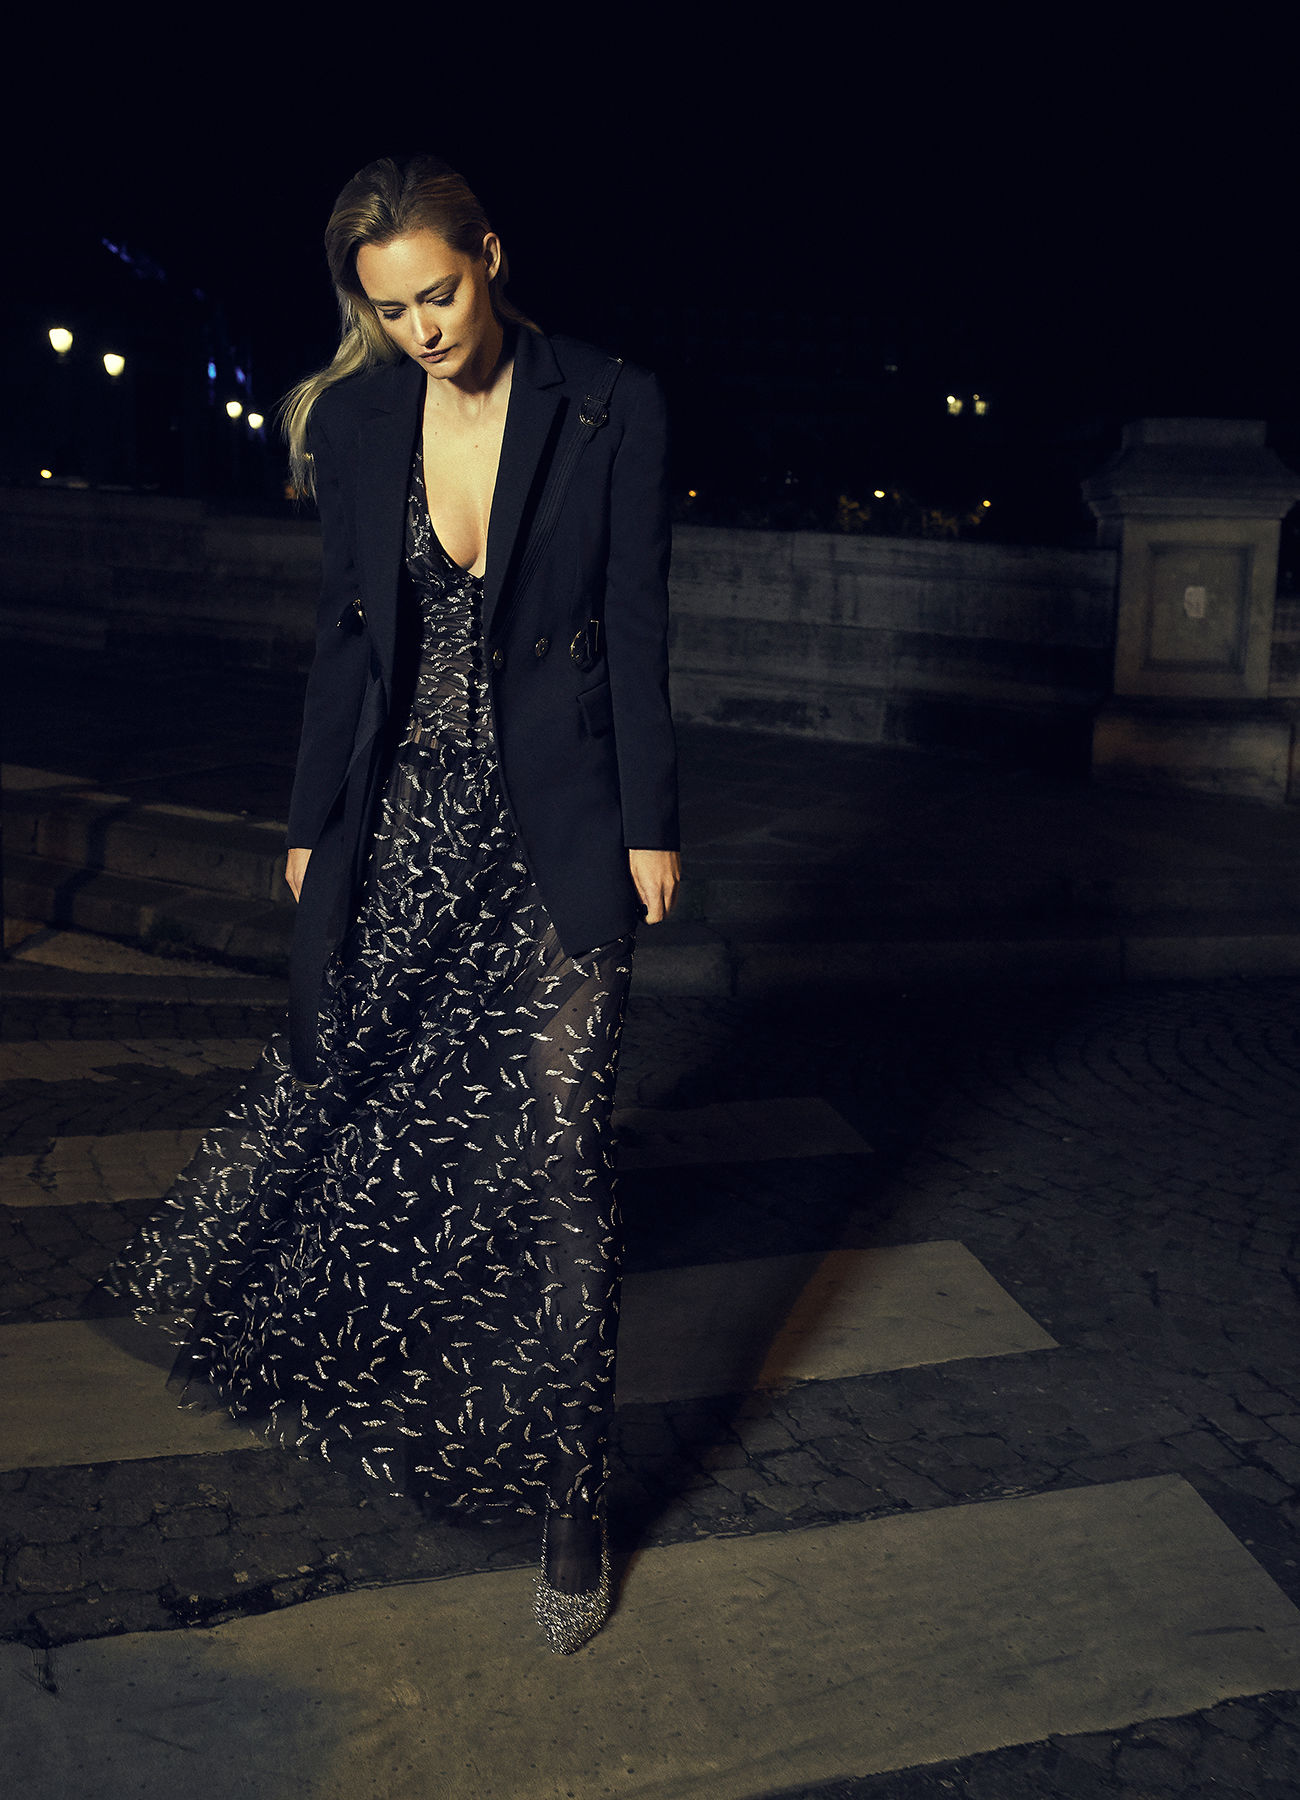 'Paris by night' ROGER WEBER for ELLE SERBIA